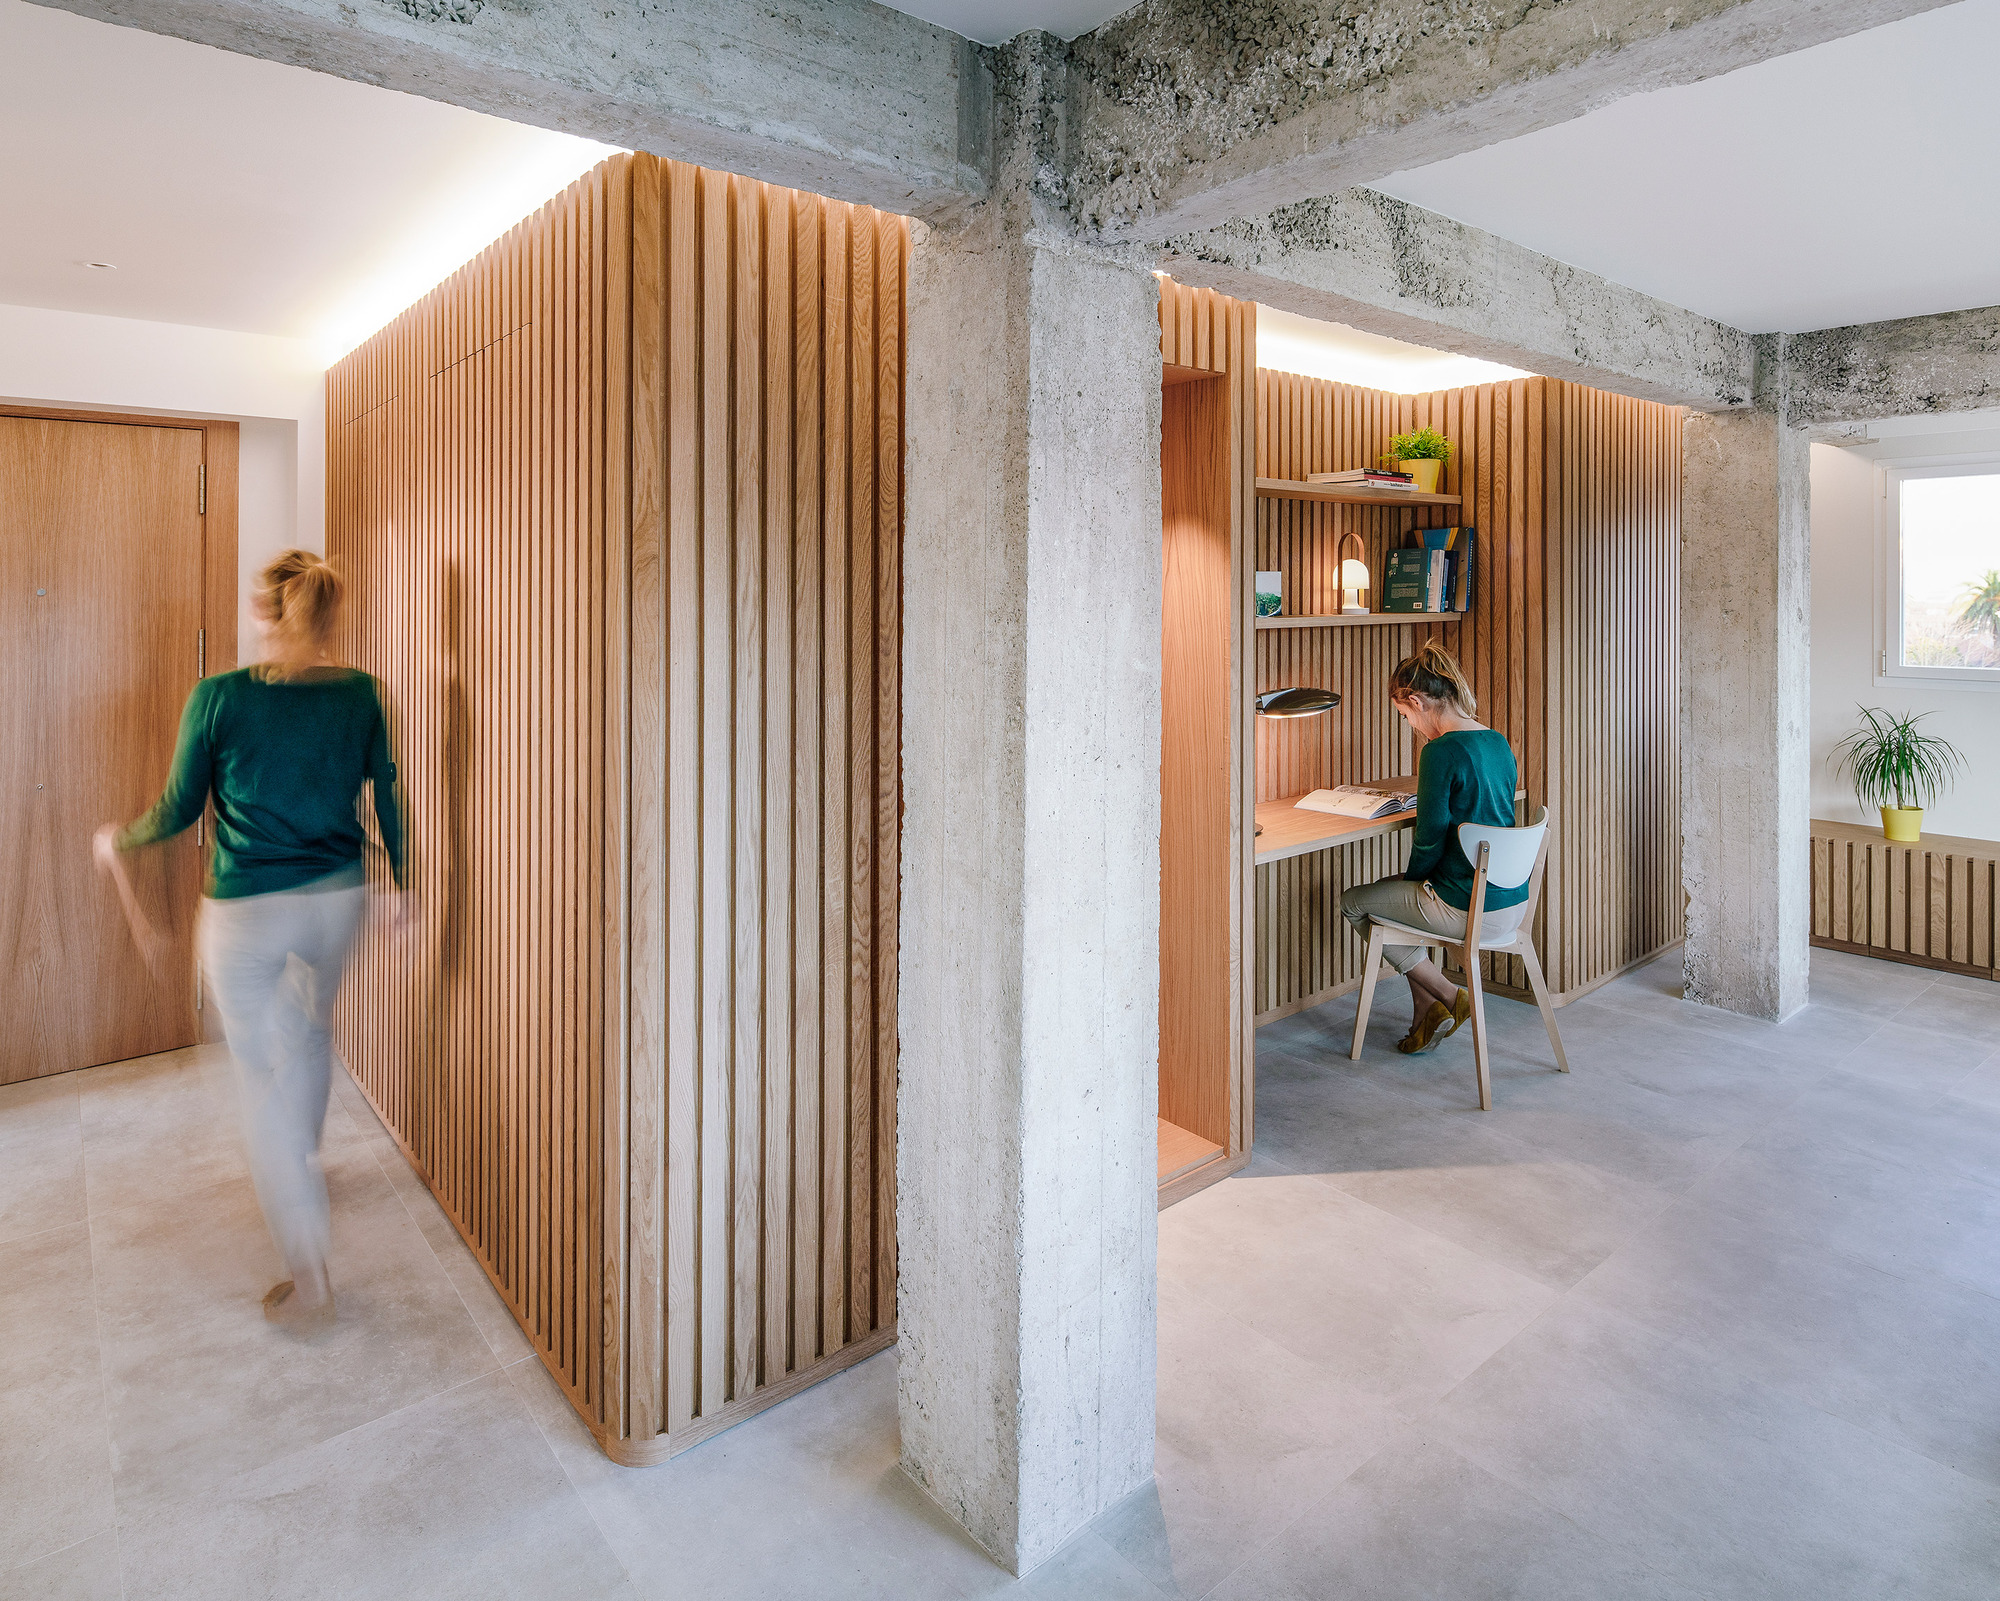 Wood and concrete find space next to one another inside this space-savvy modern Spanish apartment